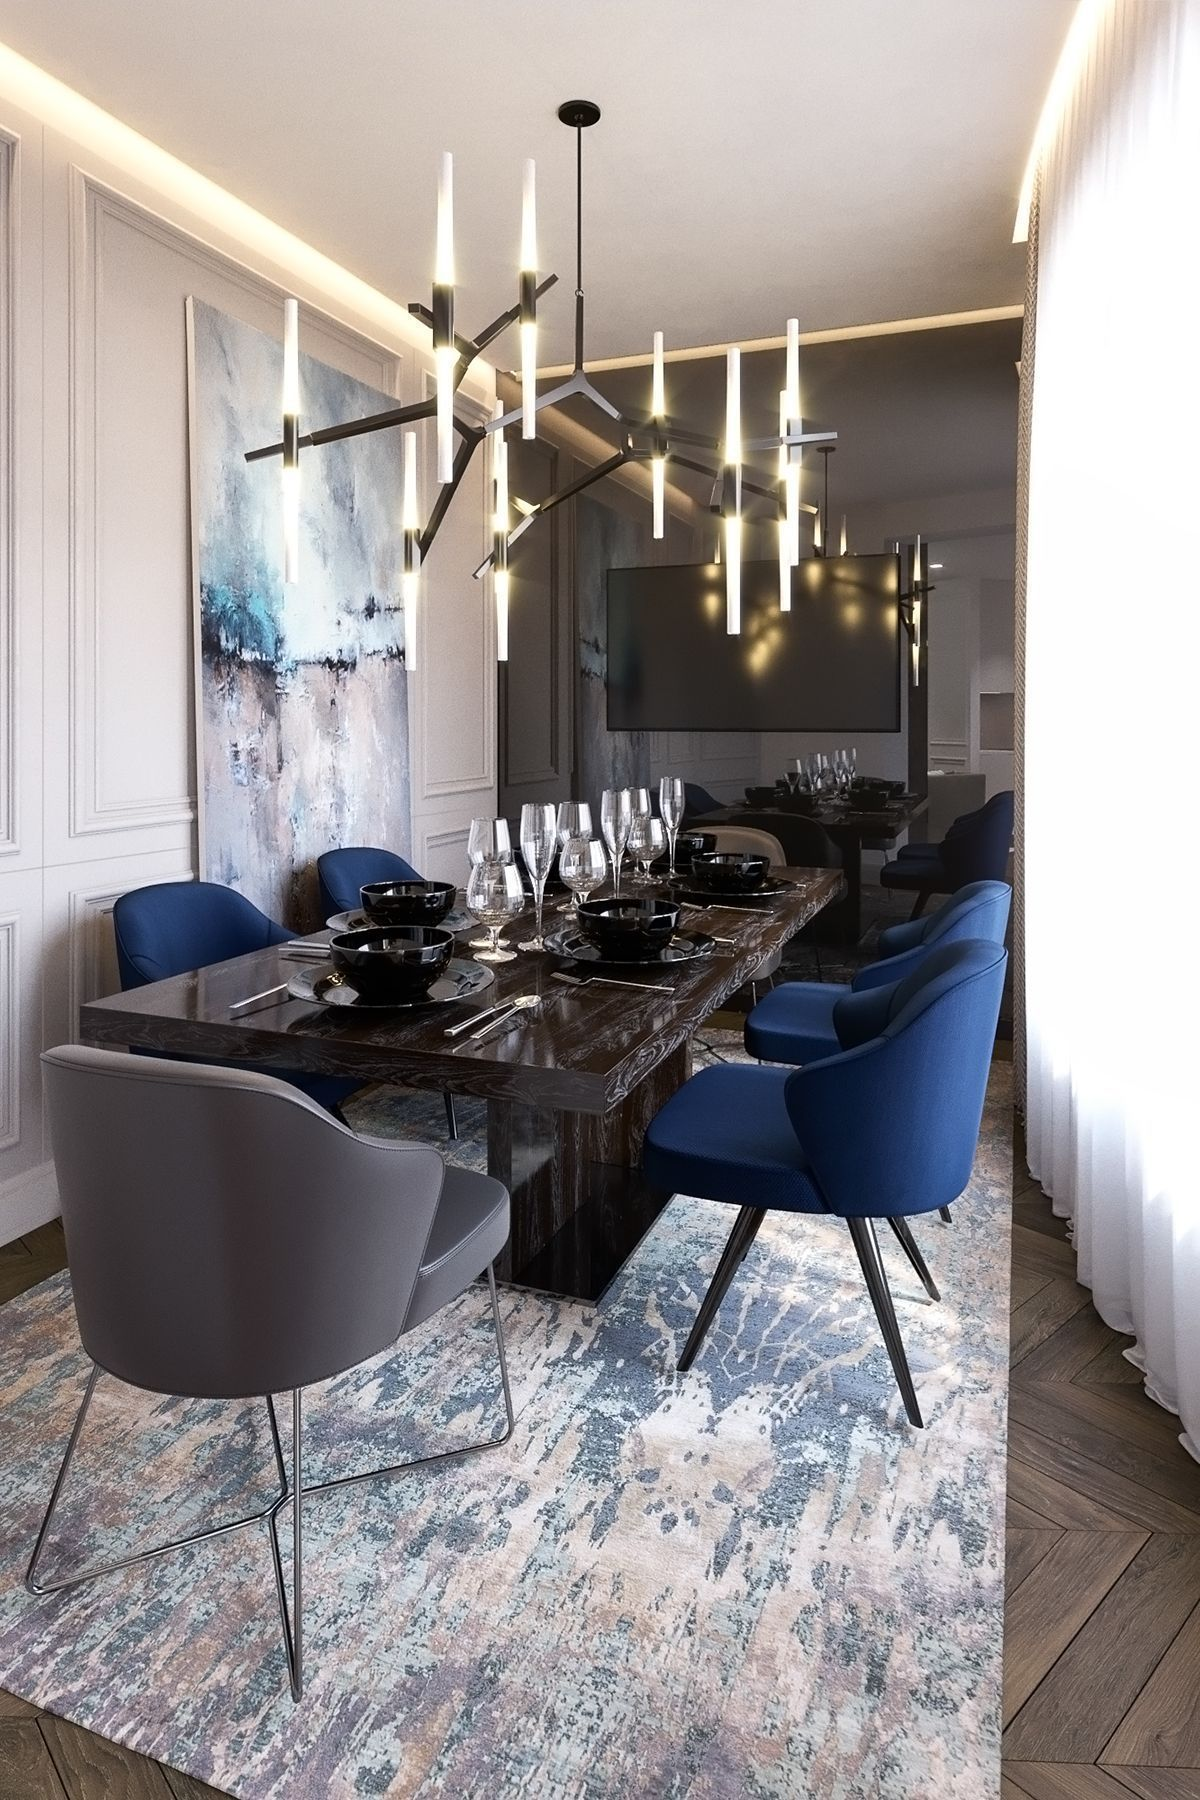 Modern Home Decor Tips To Make Any Home Look Fabulous Dining Room Small